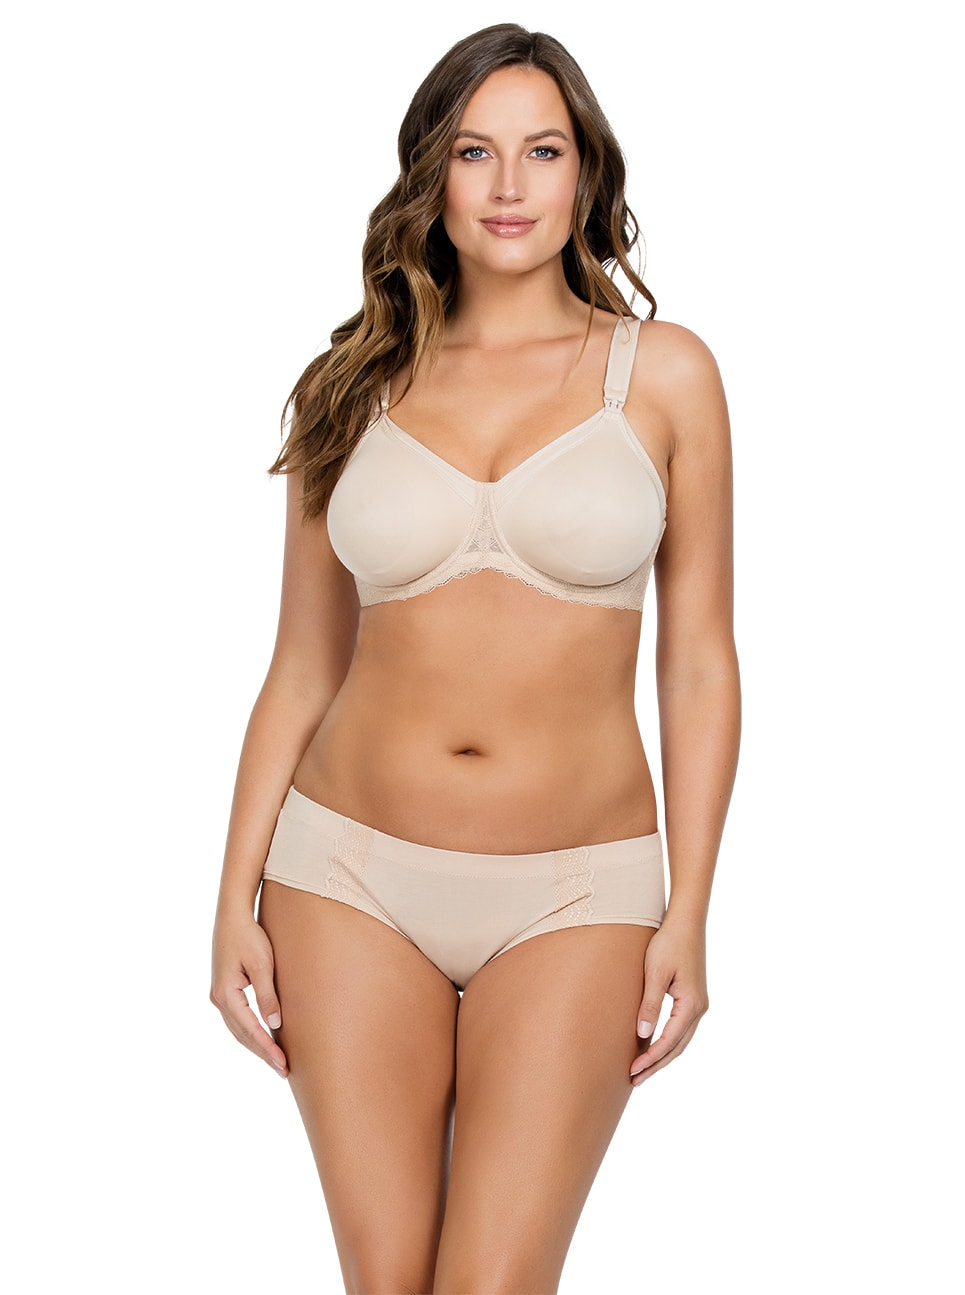 PARFAIT Leila NursingBraPNB502 Bare Front copy - Leila Nursing Bra- Bare - NB502